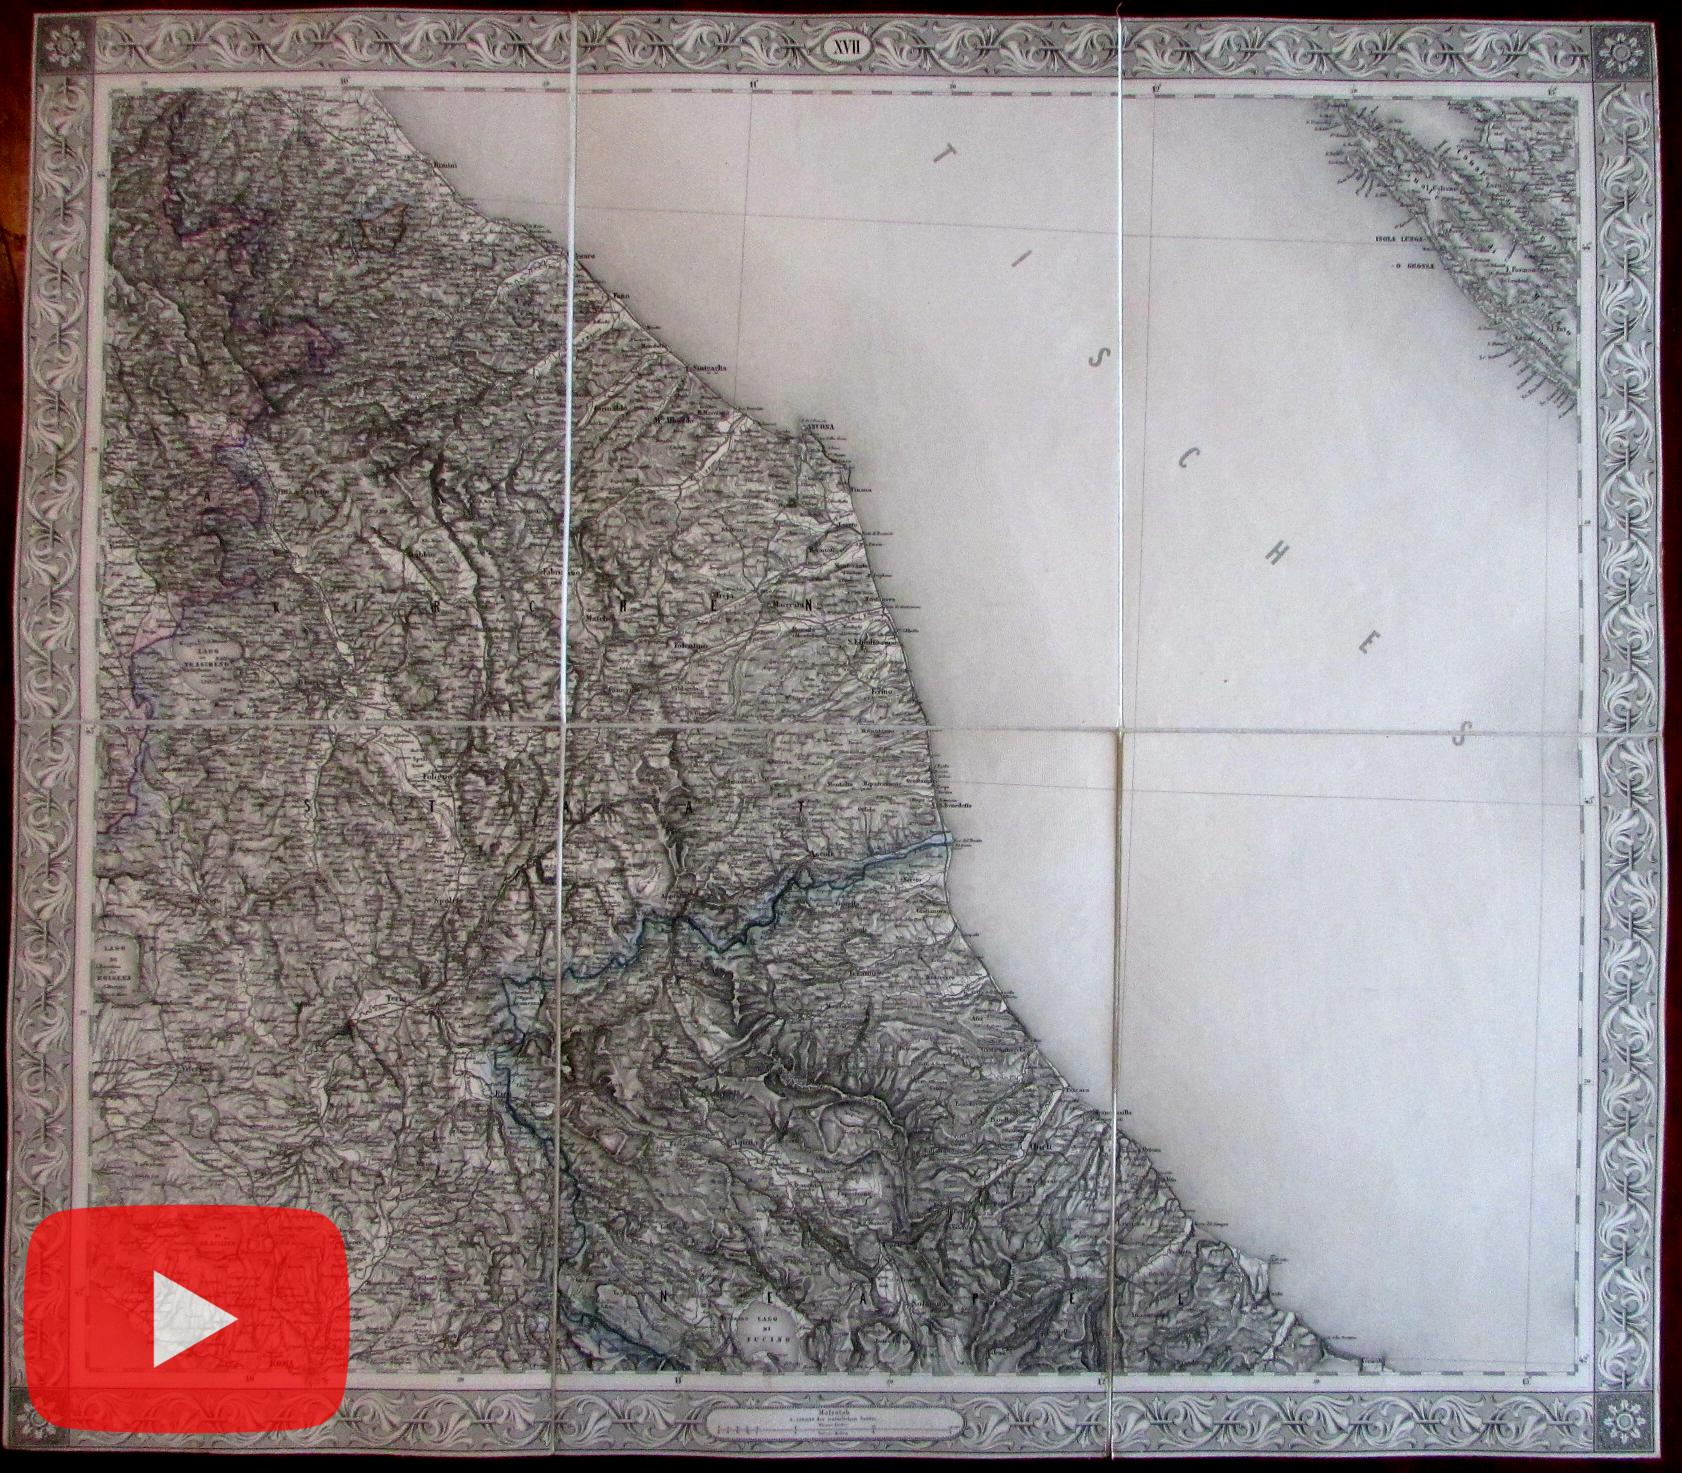 Central Italy 1858 Scheda linen-backed large map Rome to Ancona Adriatic    eBay